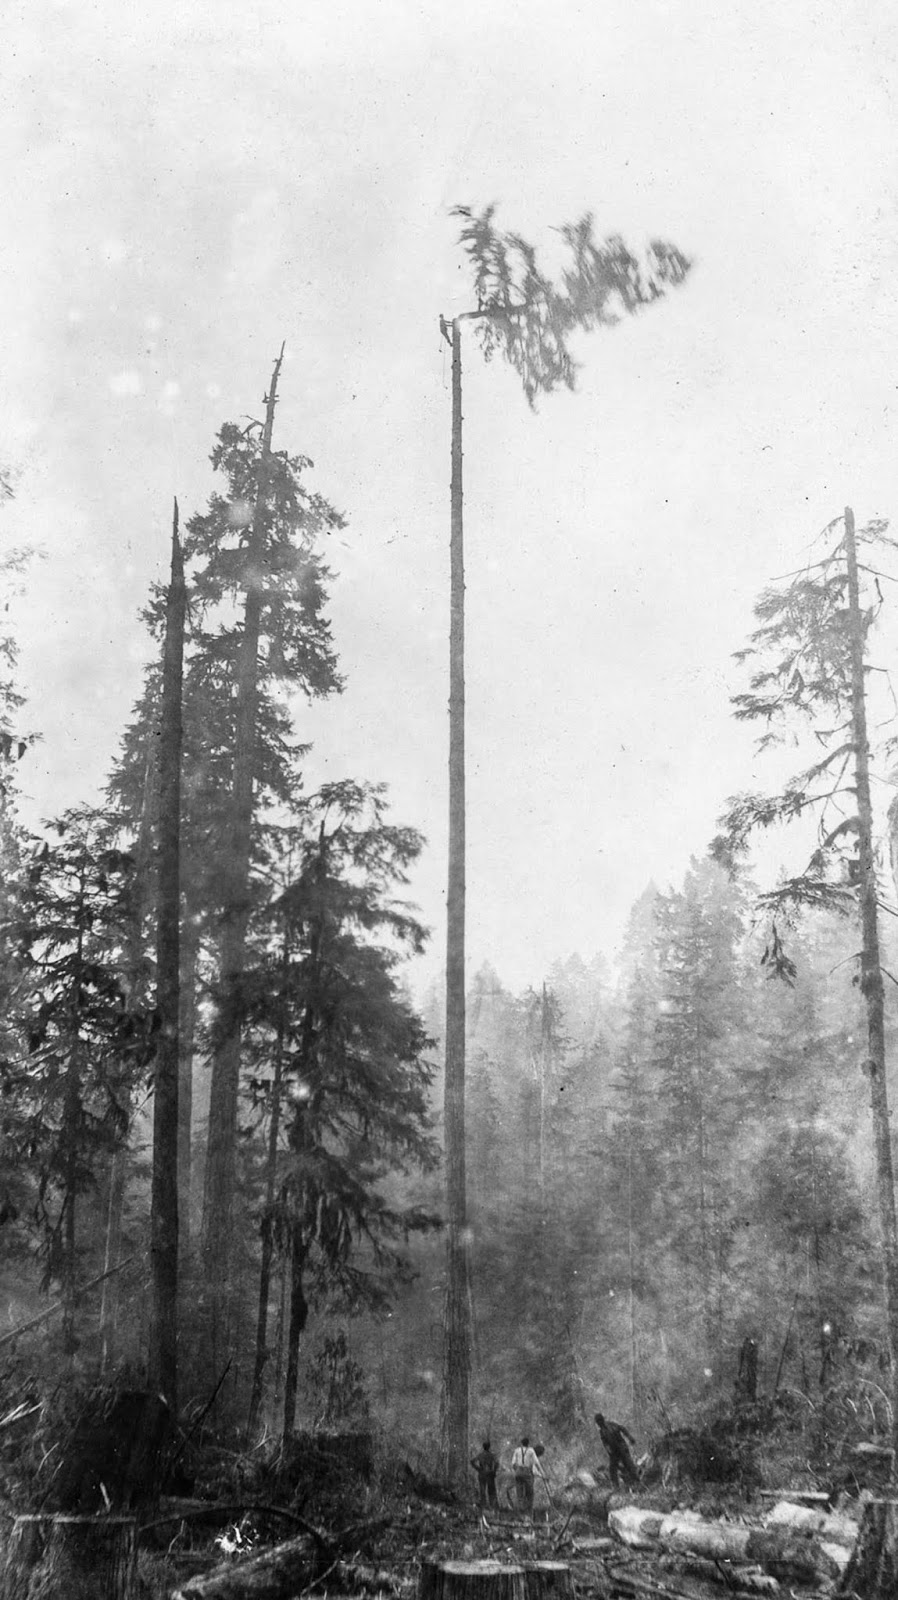 A high rigger cuts the top off a tree as his colleagues watch from below. c. 1920.